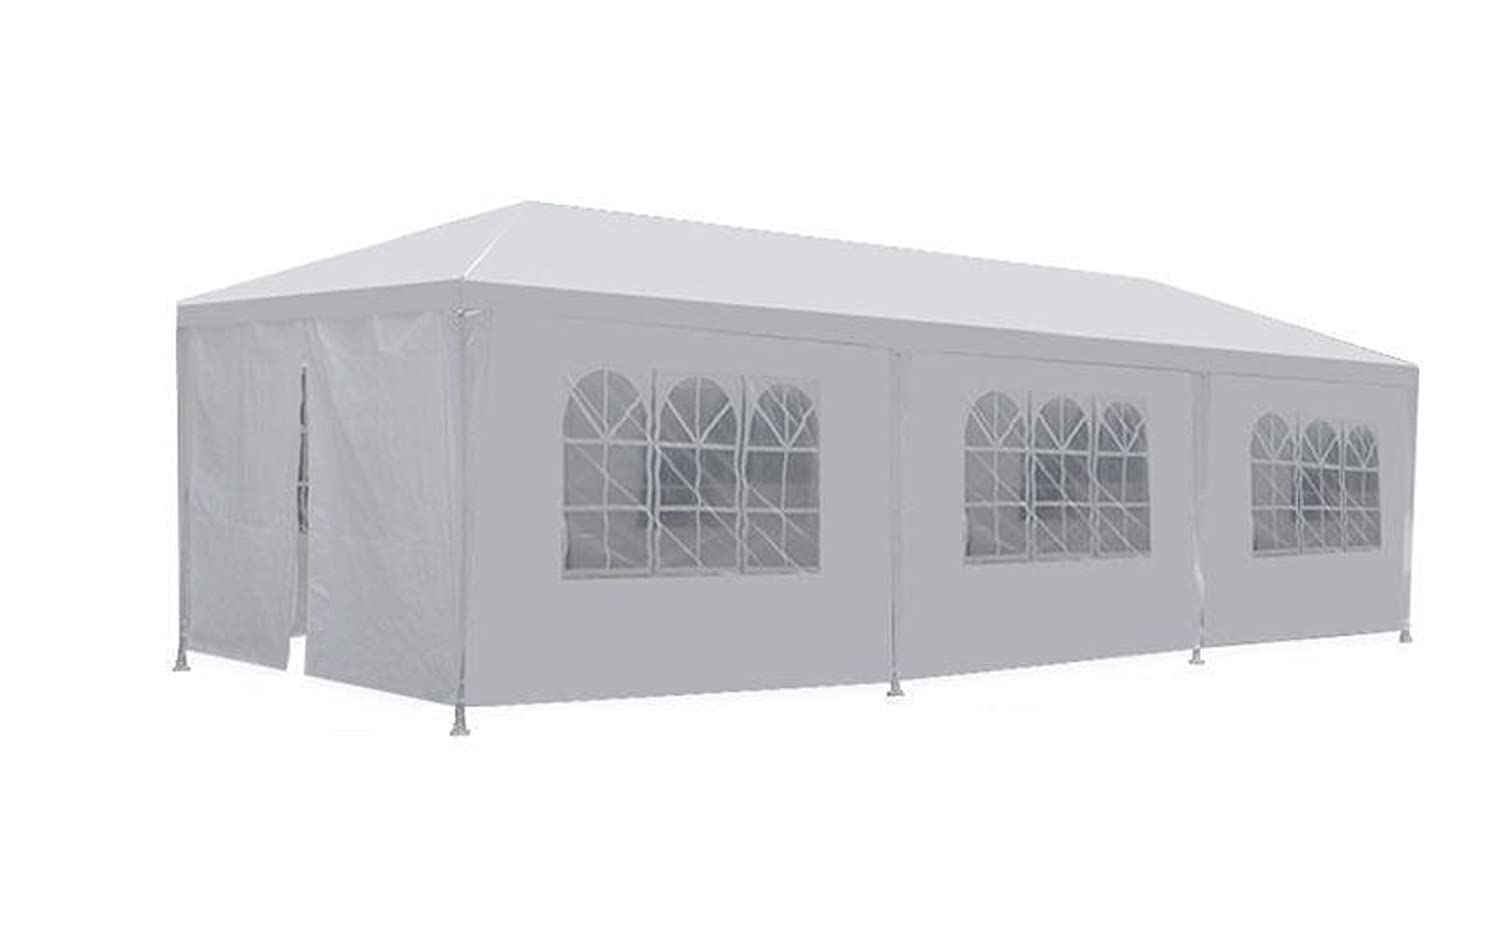 Amazon.com New 10u0027x30u0027 White Outdoor Gazebo Canopy Party Wedding Tent Removable Walls Garden u0026 Outdoor  sc 1 st  Amazon.com & Amazon.com: New 10u0027x30u0027 White Outdoor Gazebo Canopy Party Wedding ...